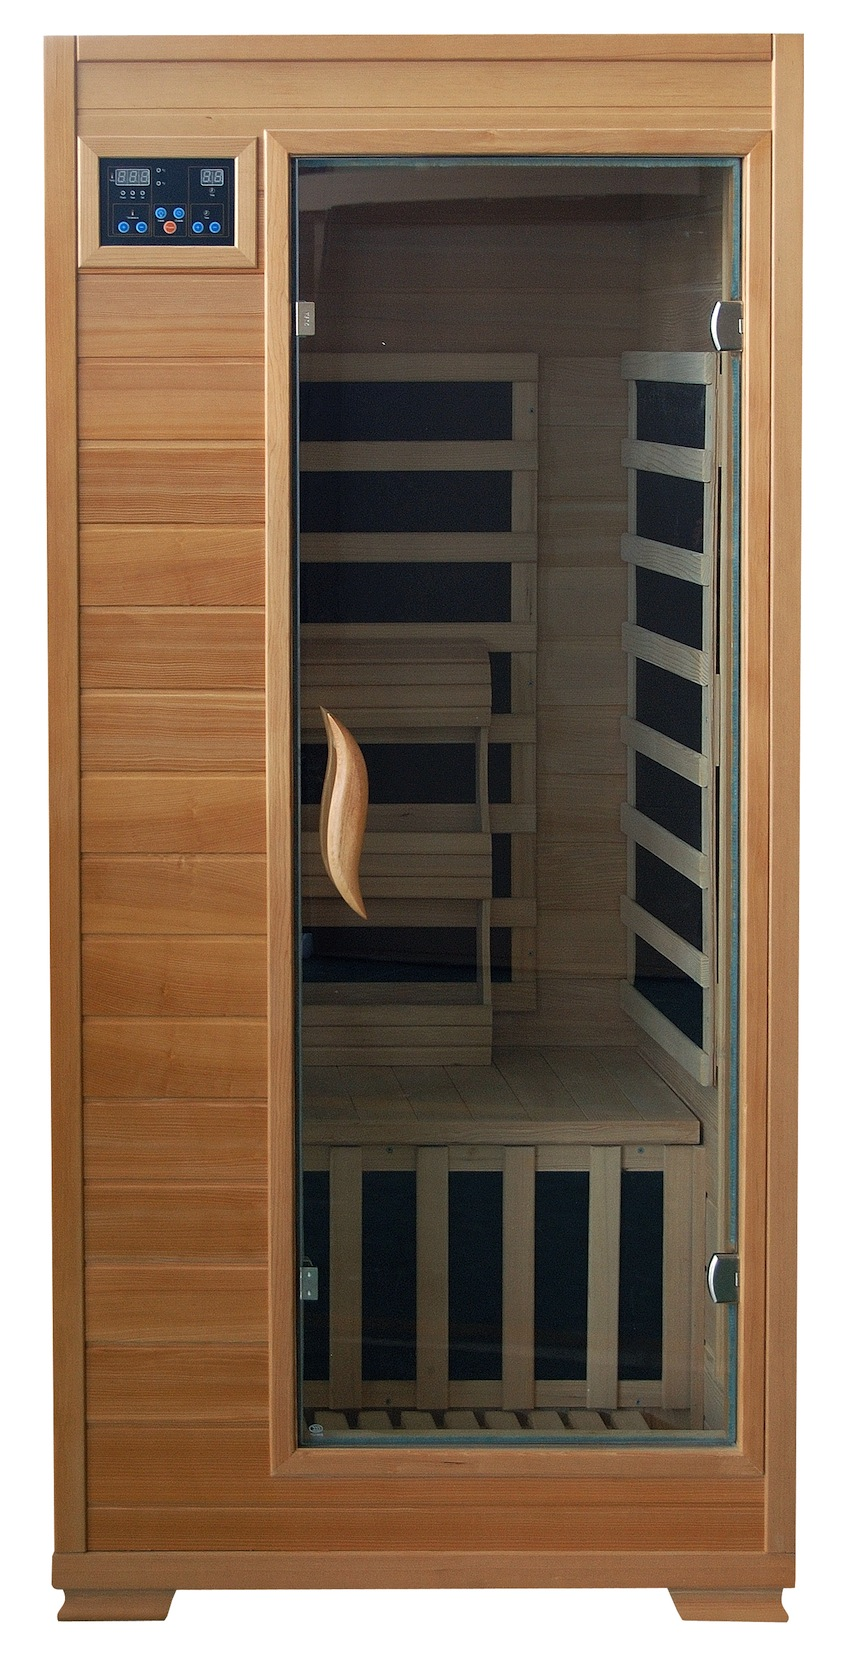 Infrared Sauna With Salt Wall In Nh Hotel Zandvoort The: 1 Person Far Infrared Sauna With Carbon Heaters